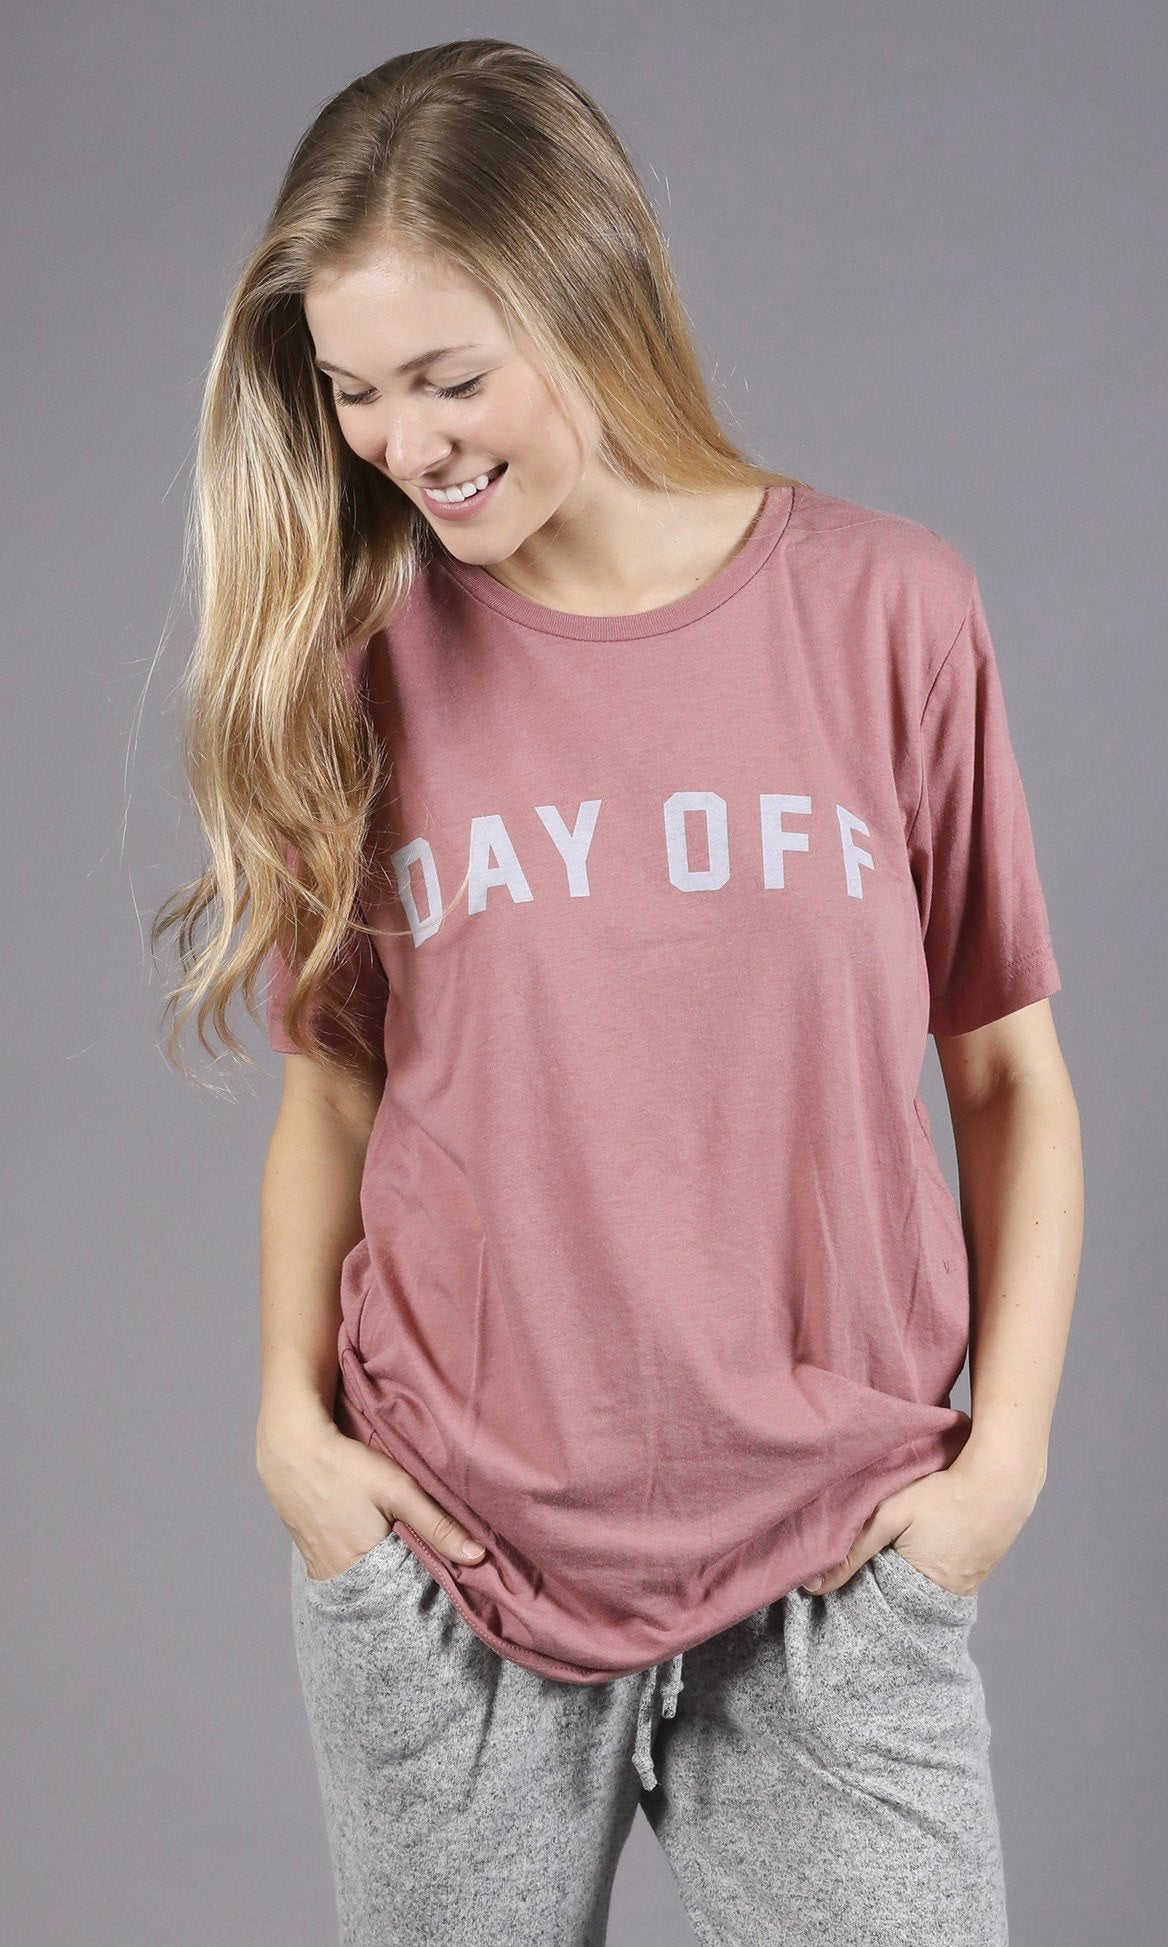 DAY OFF GRAPHIC TEE